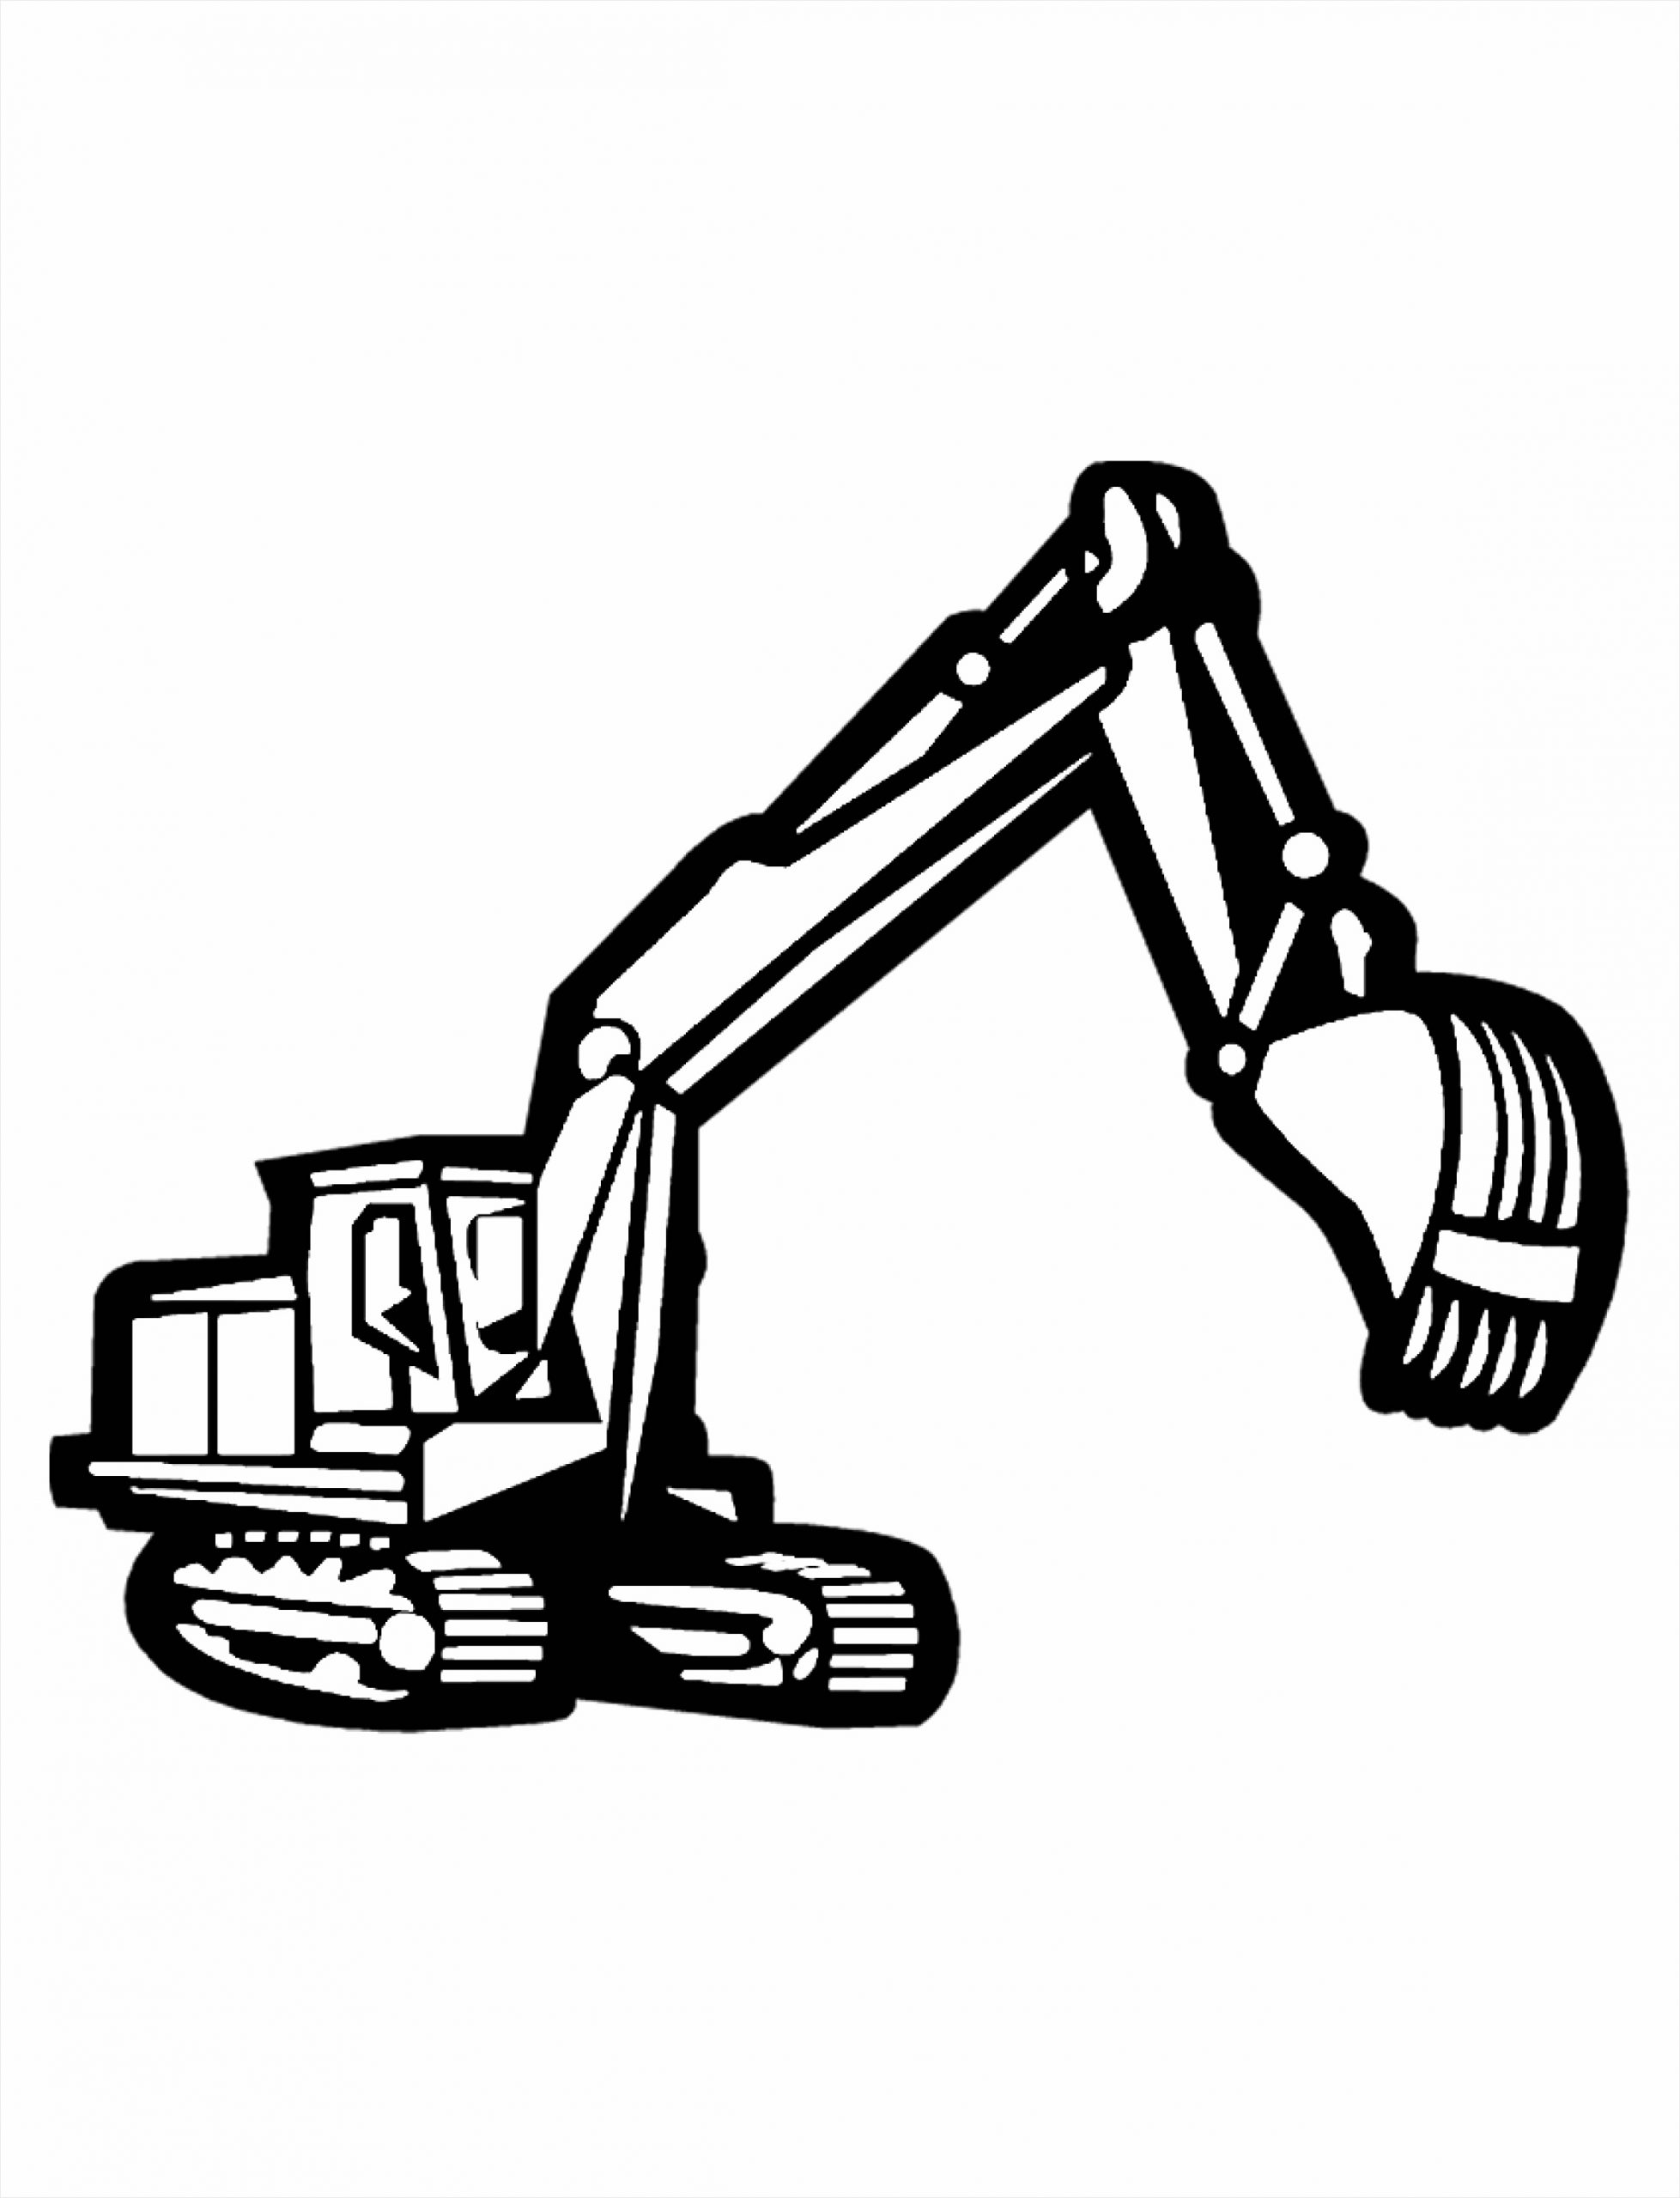 Construction trucks equipment coloring pages for kids printable activity sheet for free 34 oaoai